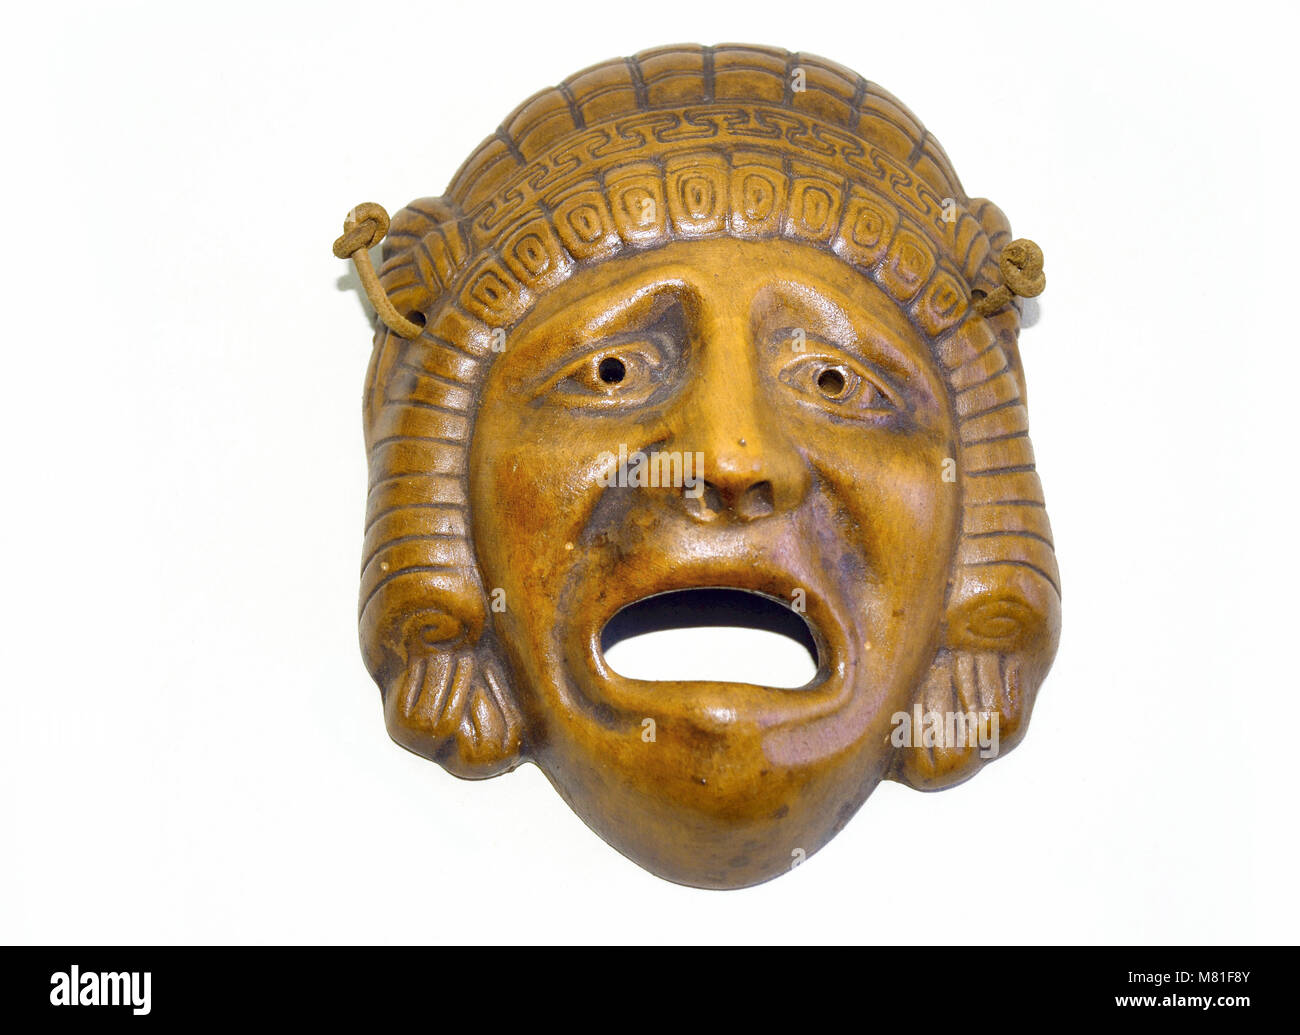 modern copy of an ancient Greek tragedy drama mask. - Stock Image